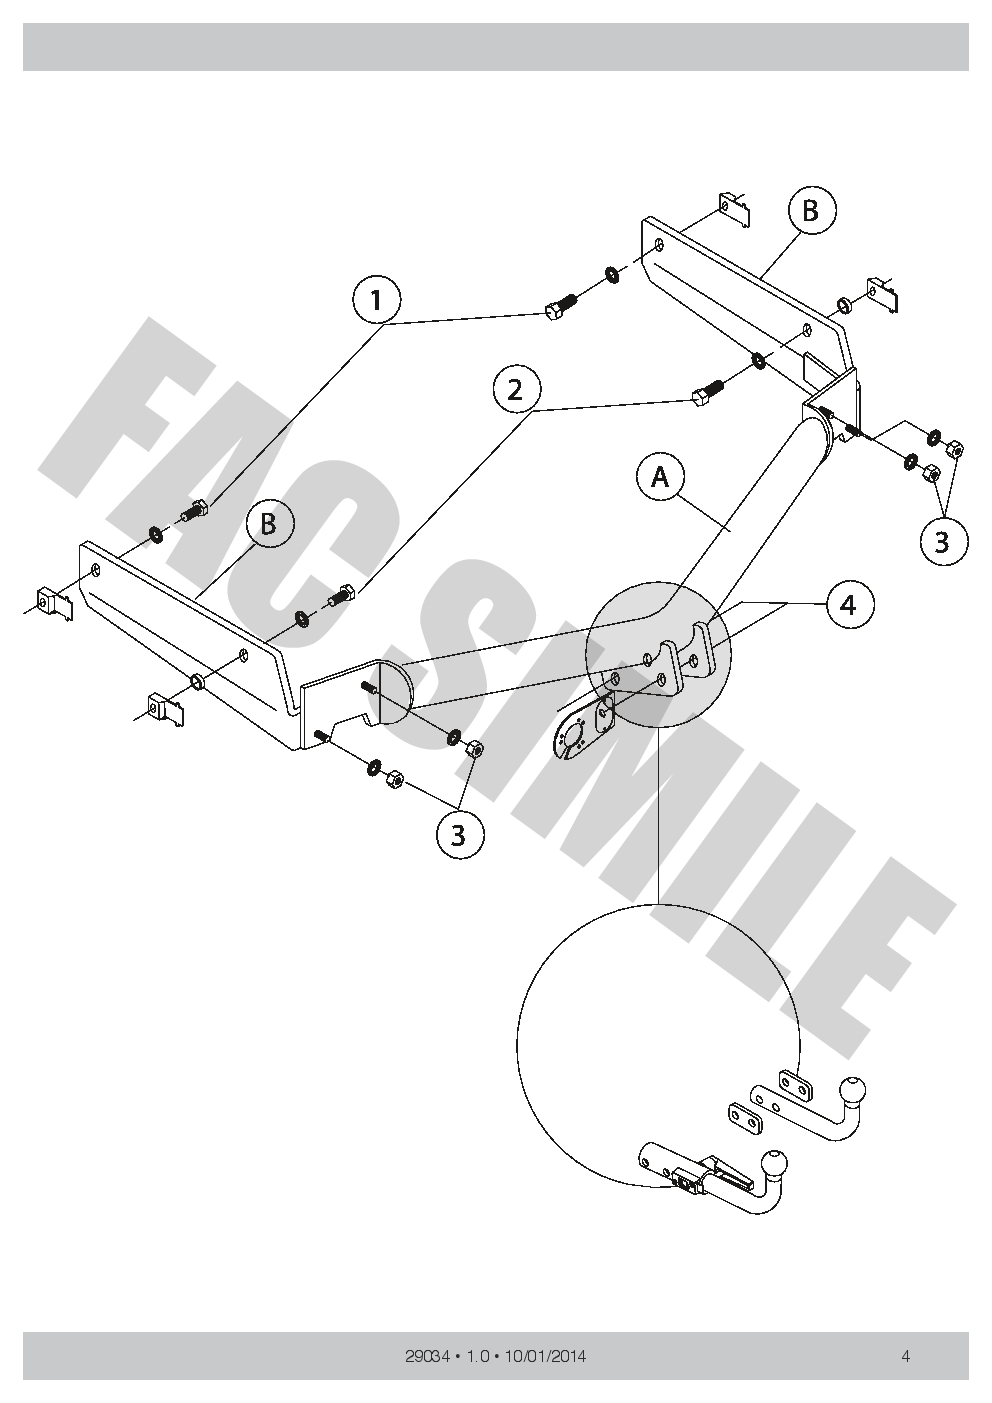 Fixed Swan Neck Towbar For Peugeot 206 Cc 13 Pin Wiring 01 29034 Diagrams